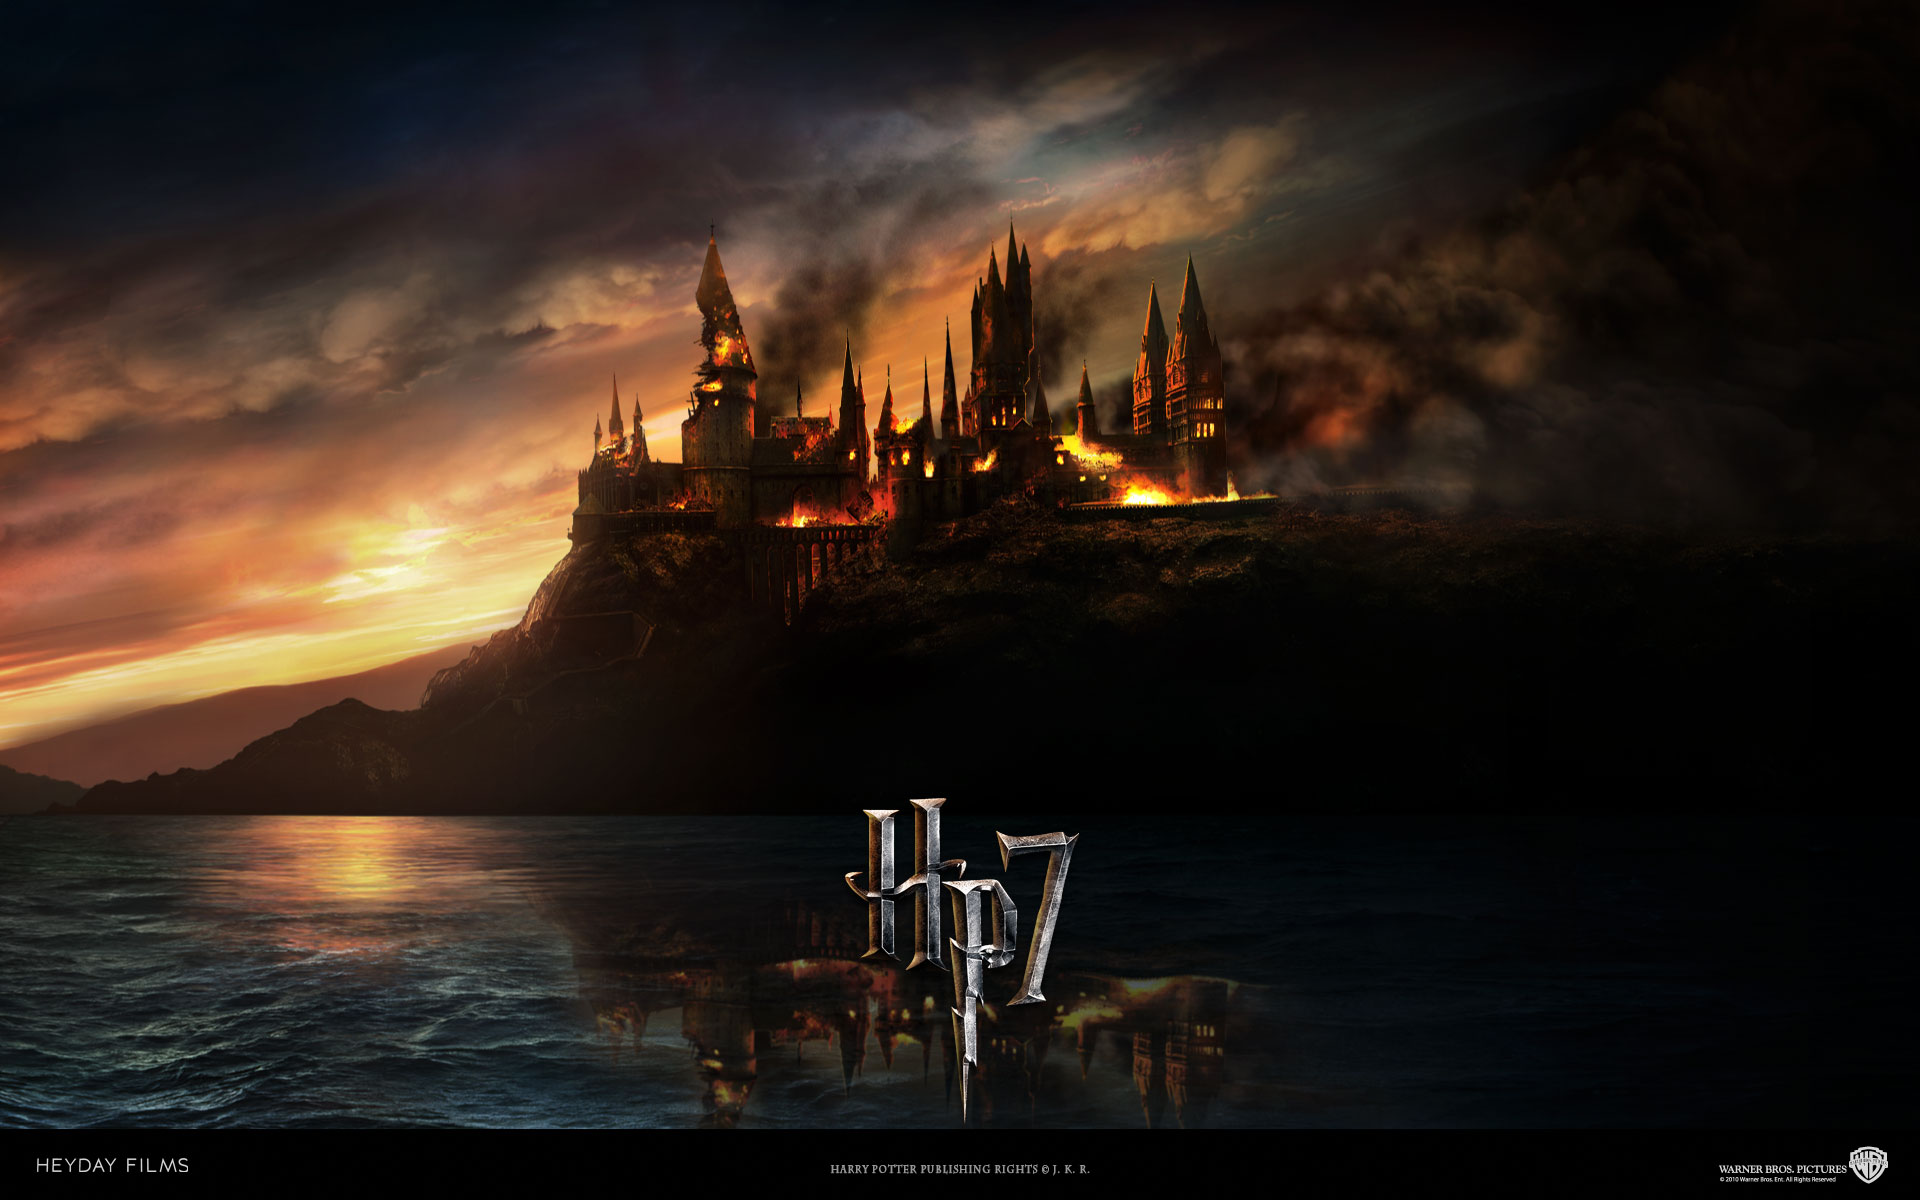 Wallpaper Harry Potter Ecole qui brule